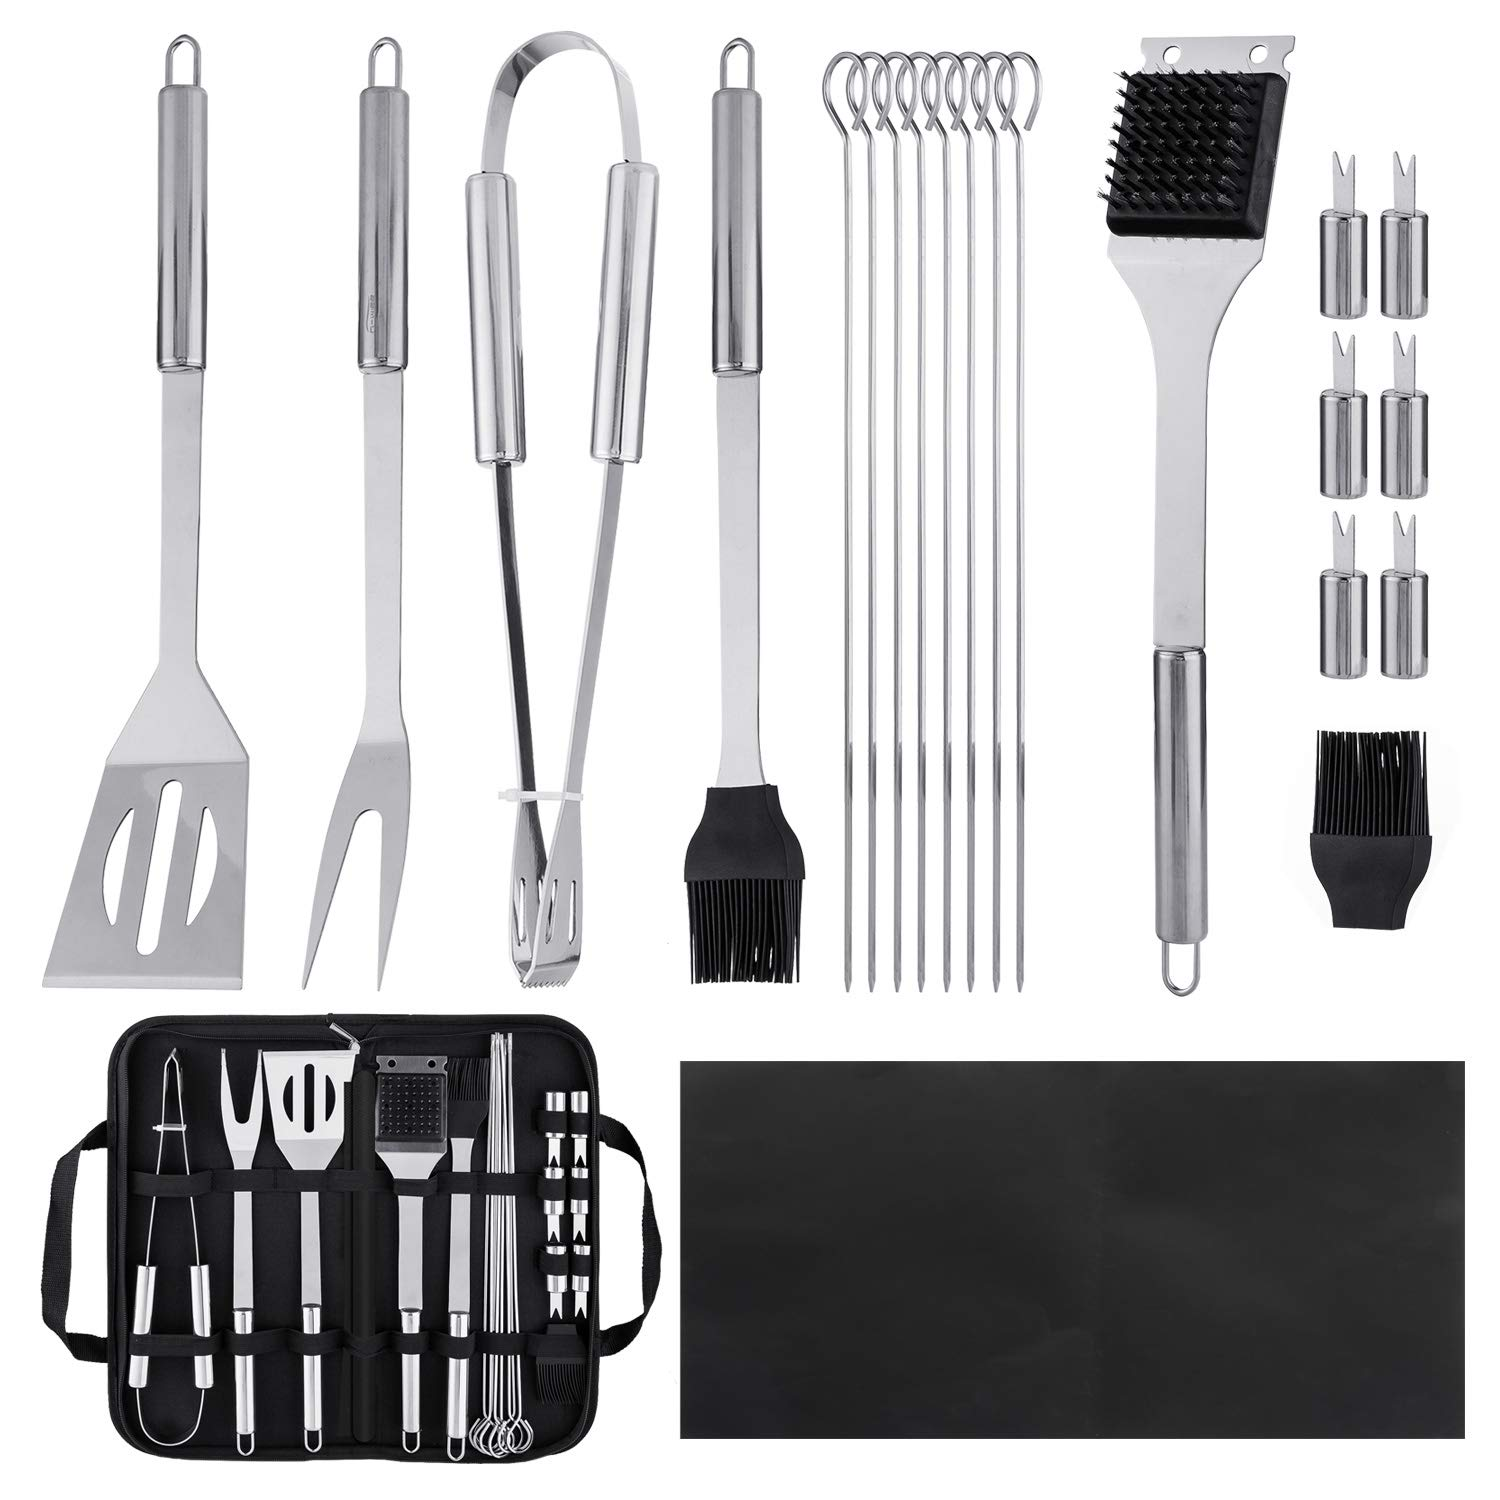 BEBANG BBQ Grill Tool Set, Professional Stainless Steel Barbecue Grill Accessories for Backyard Barbecue, Picnics, Parties, Outdoor Grilling and Cooking